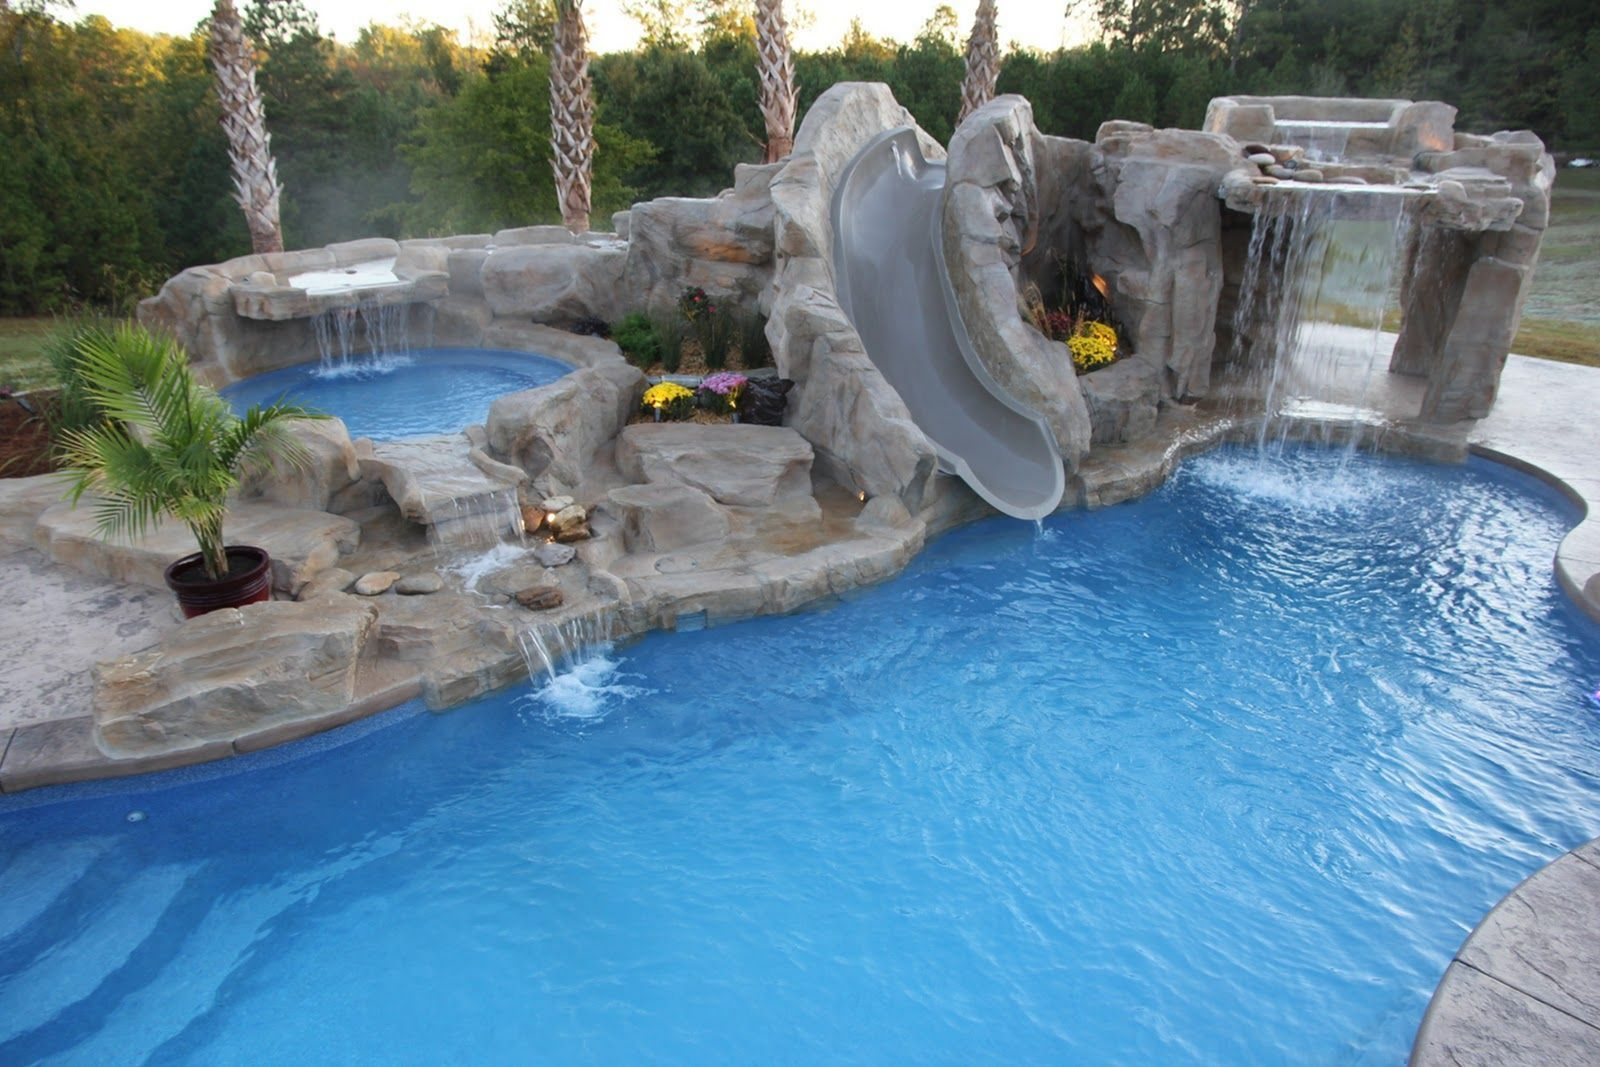 Inspiring 30 Amazing Outdoor Swimming Pool Design Ideas That Are Simply Perfection Https Backyard Pool Designs Backyard Pool Landscaping Dream Backyard Pool